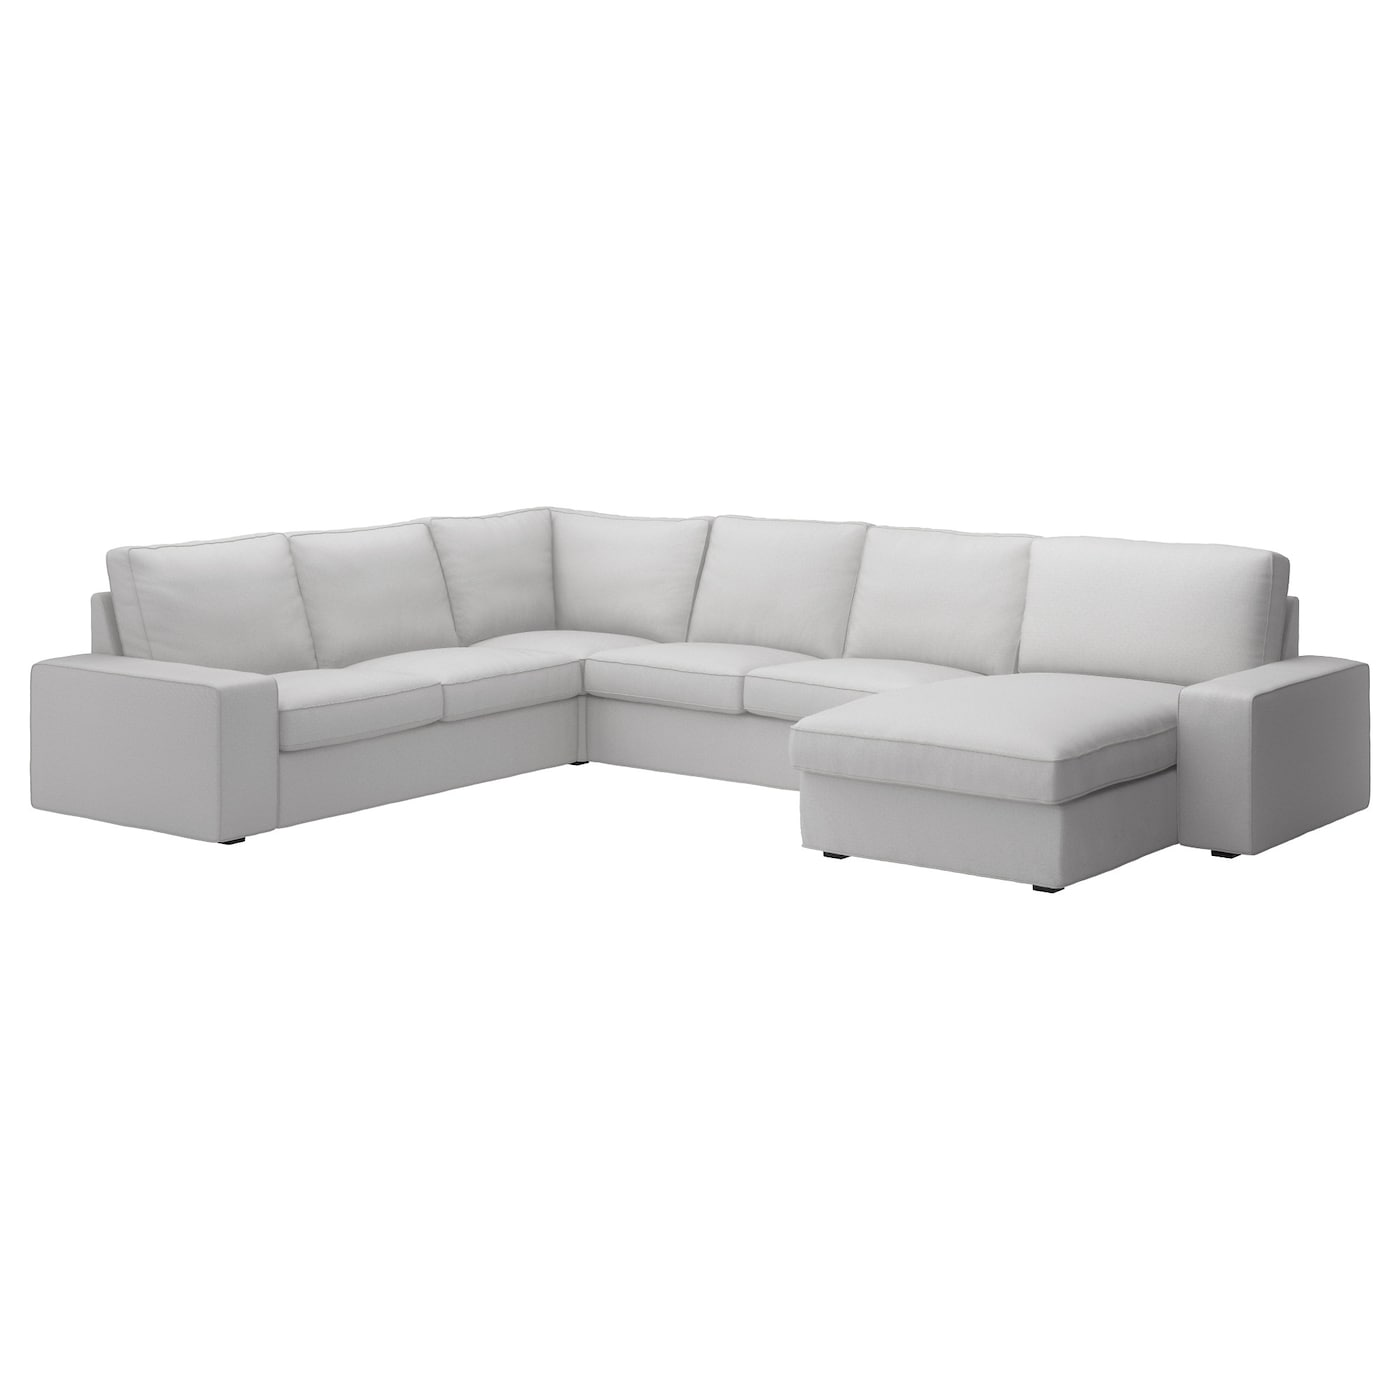 kivik corner sofa 2 2 with chaise longue ramna light grey ikea. Black Bedroom Furniture Sets. Home Design Ideas